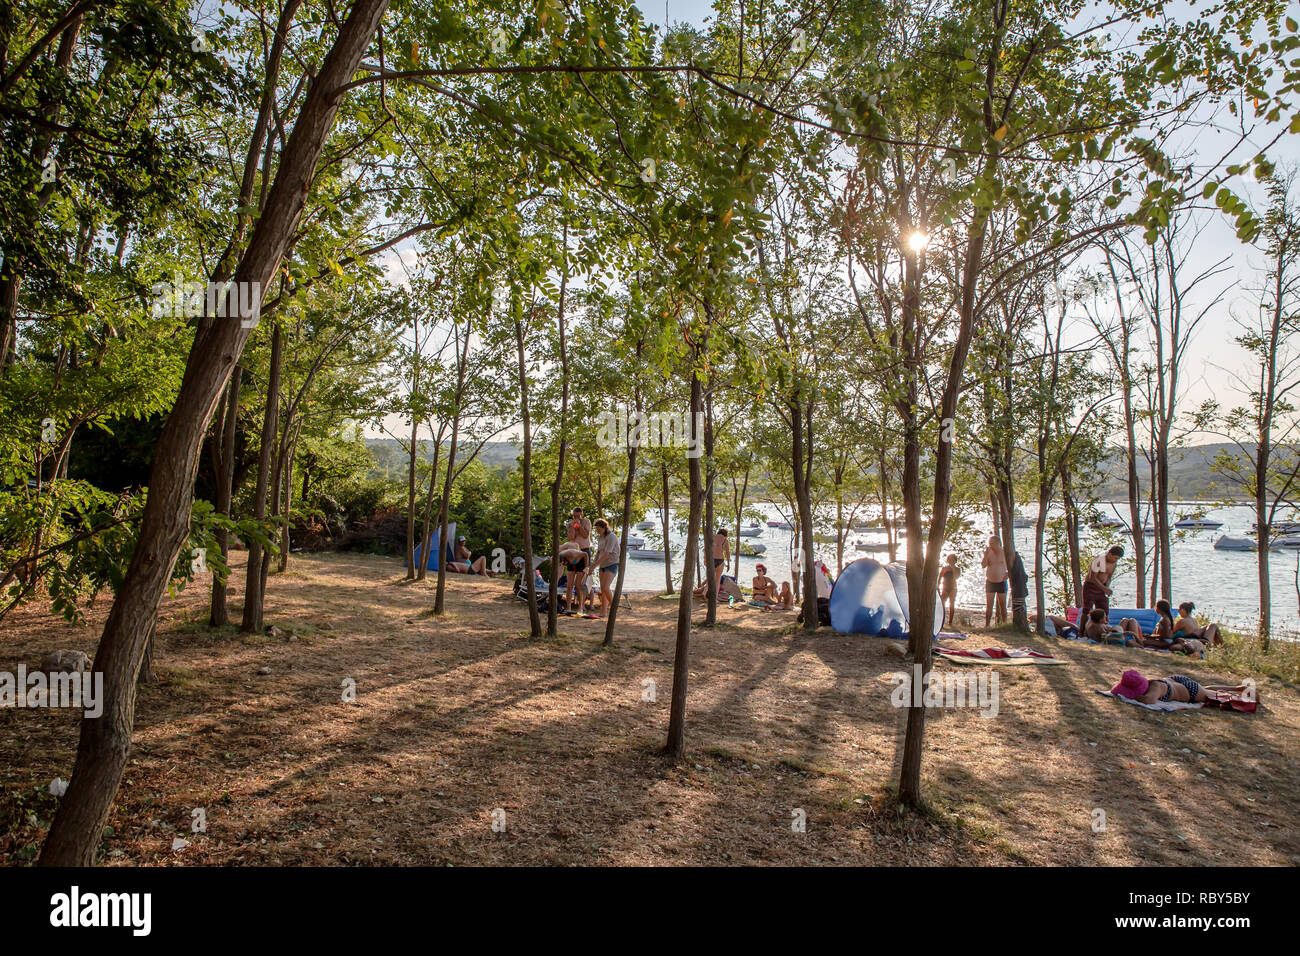 Familes relax on the tree shaded part of the beach at Soline overlooking Soline Bay on the island of Krk, Croatia - Stock Image